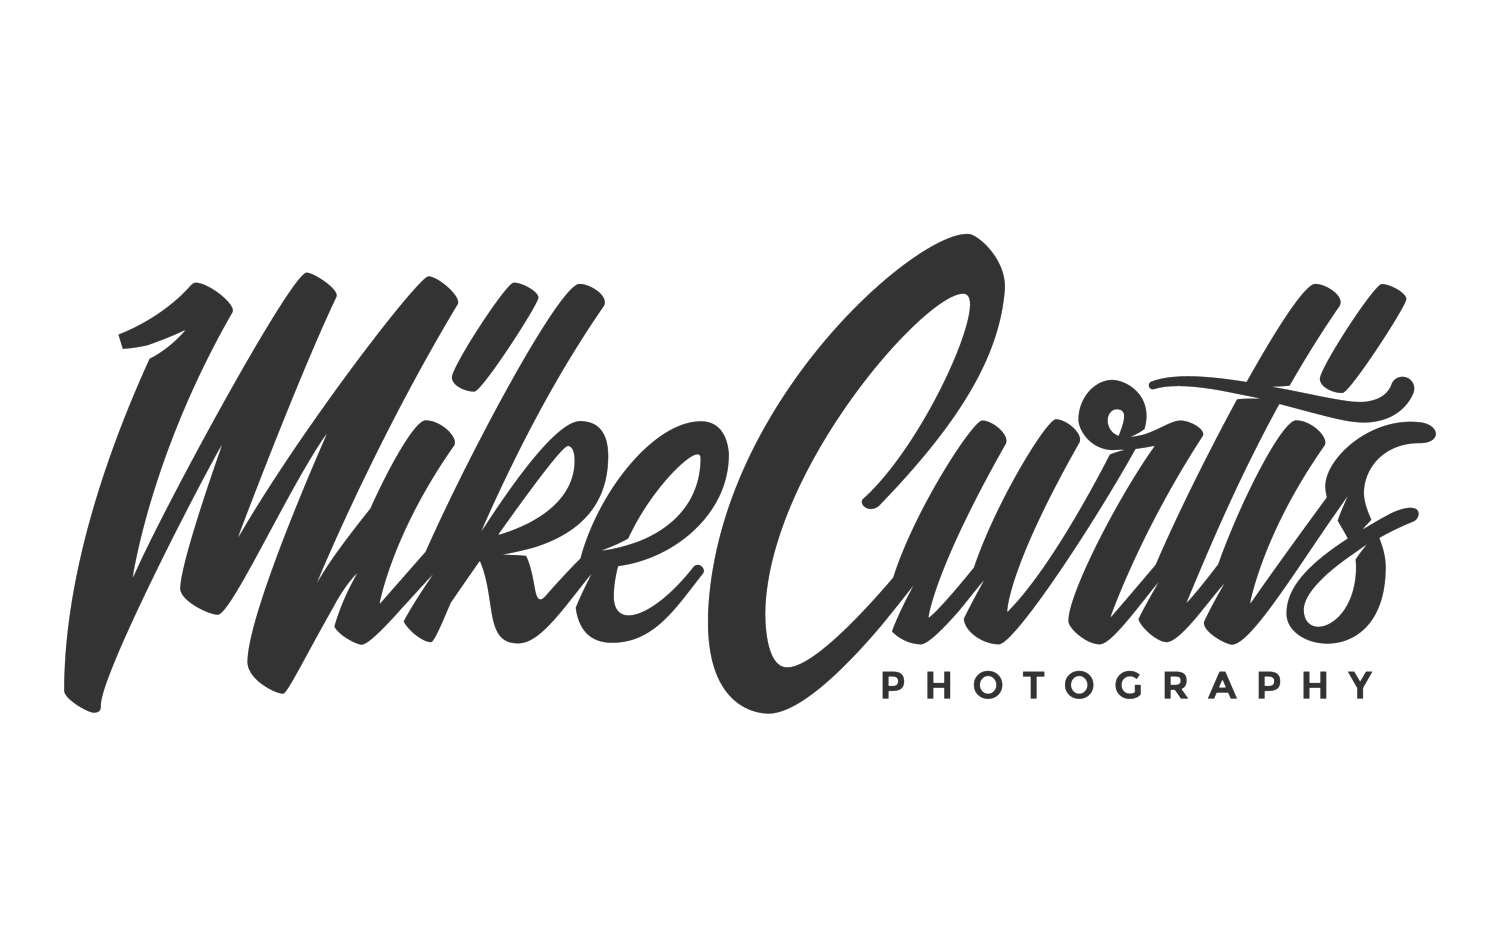 Mike Curtis Photography